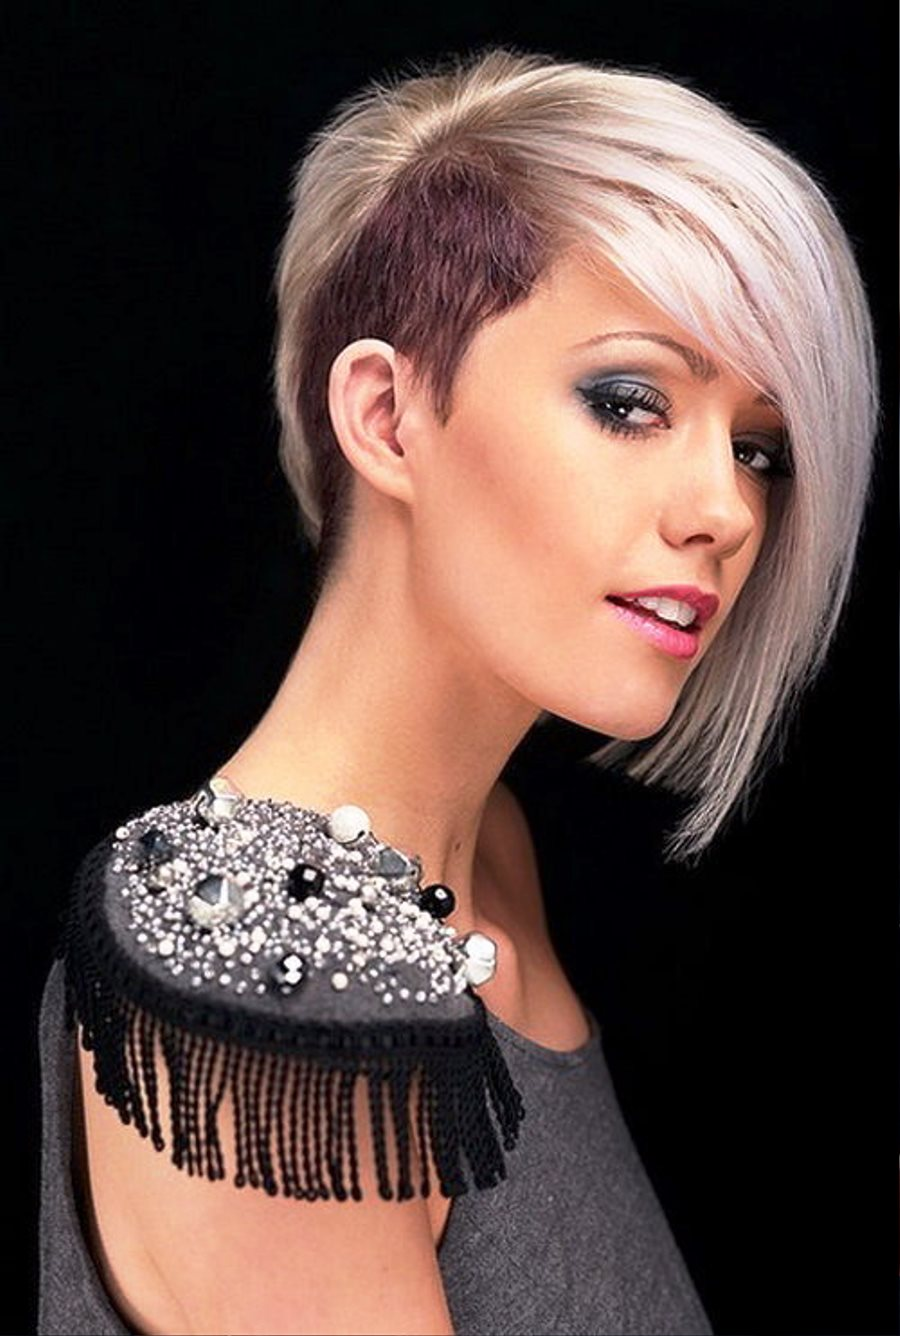 pictures of cool short hairstyles for women 2013